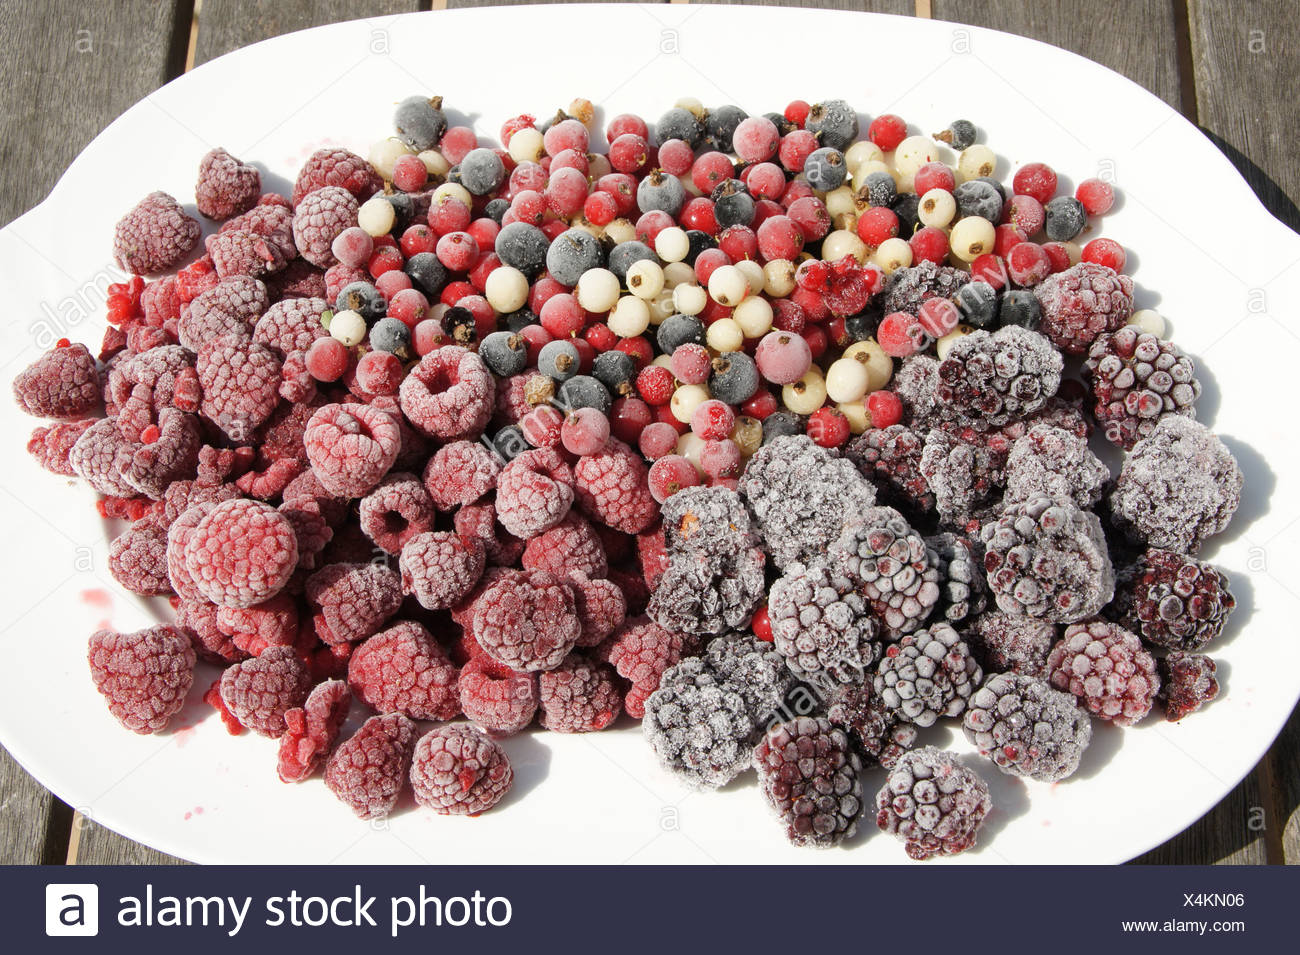 Blackberries, Currants, Raspberries Stock Photo